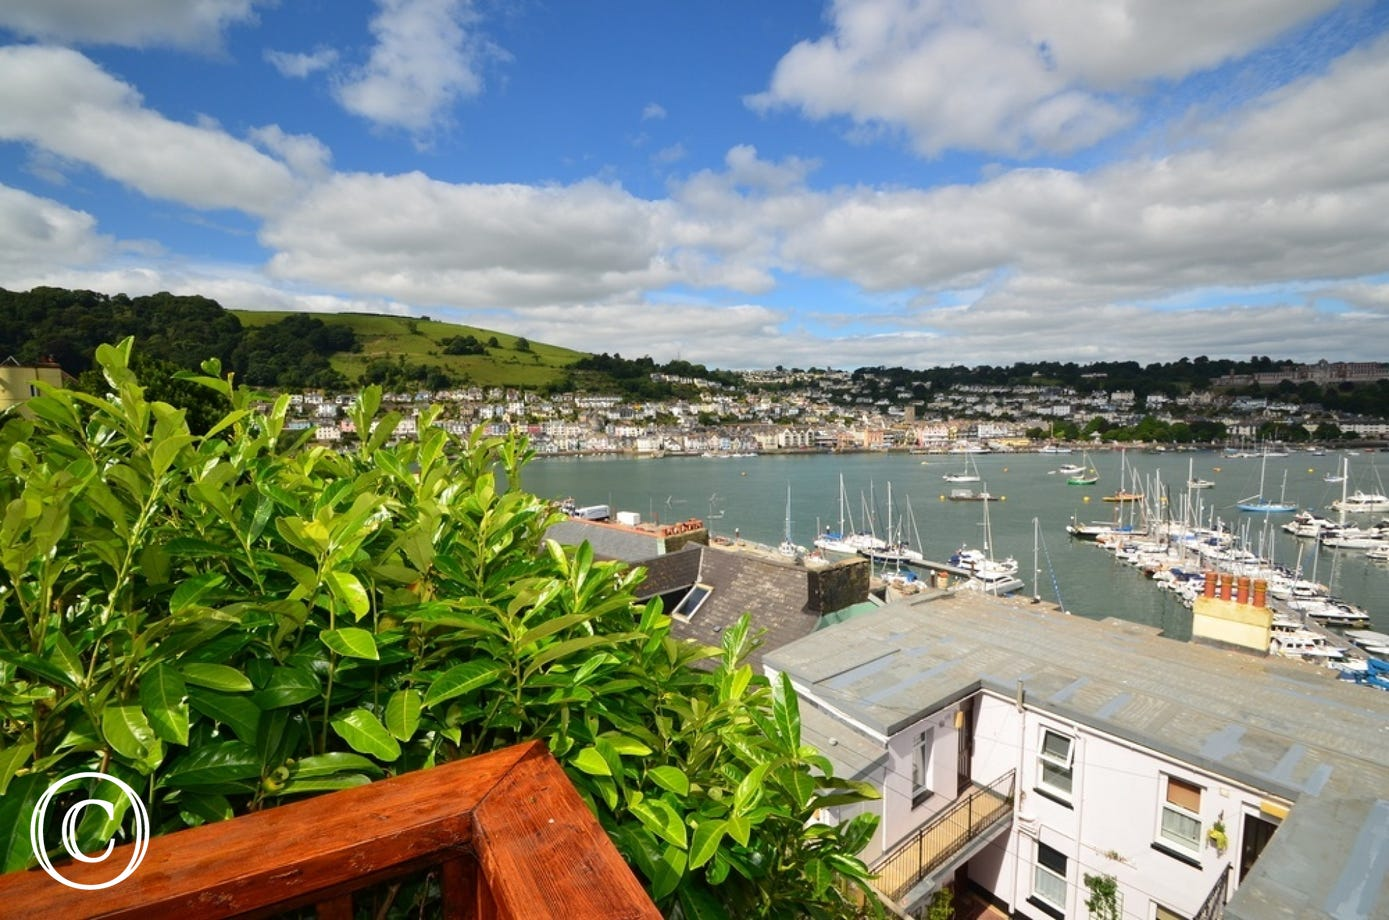 View of the River Dart from Pebble Cottage in Kingswear